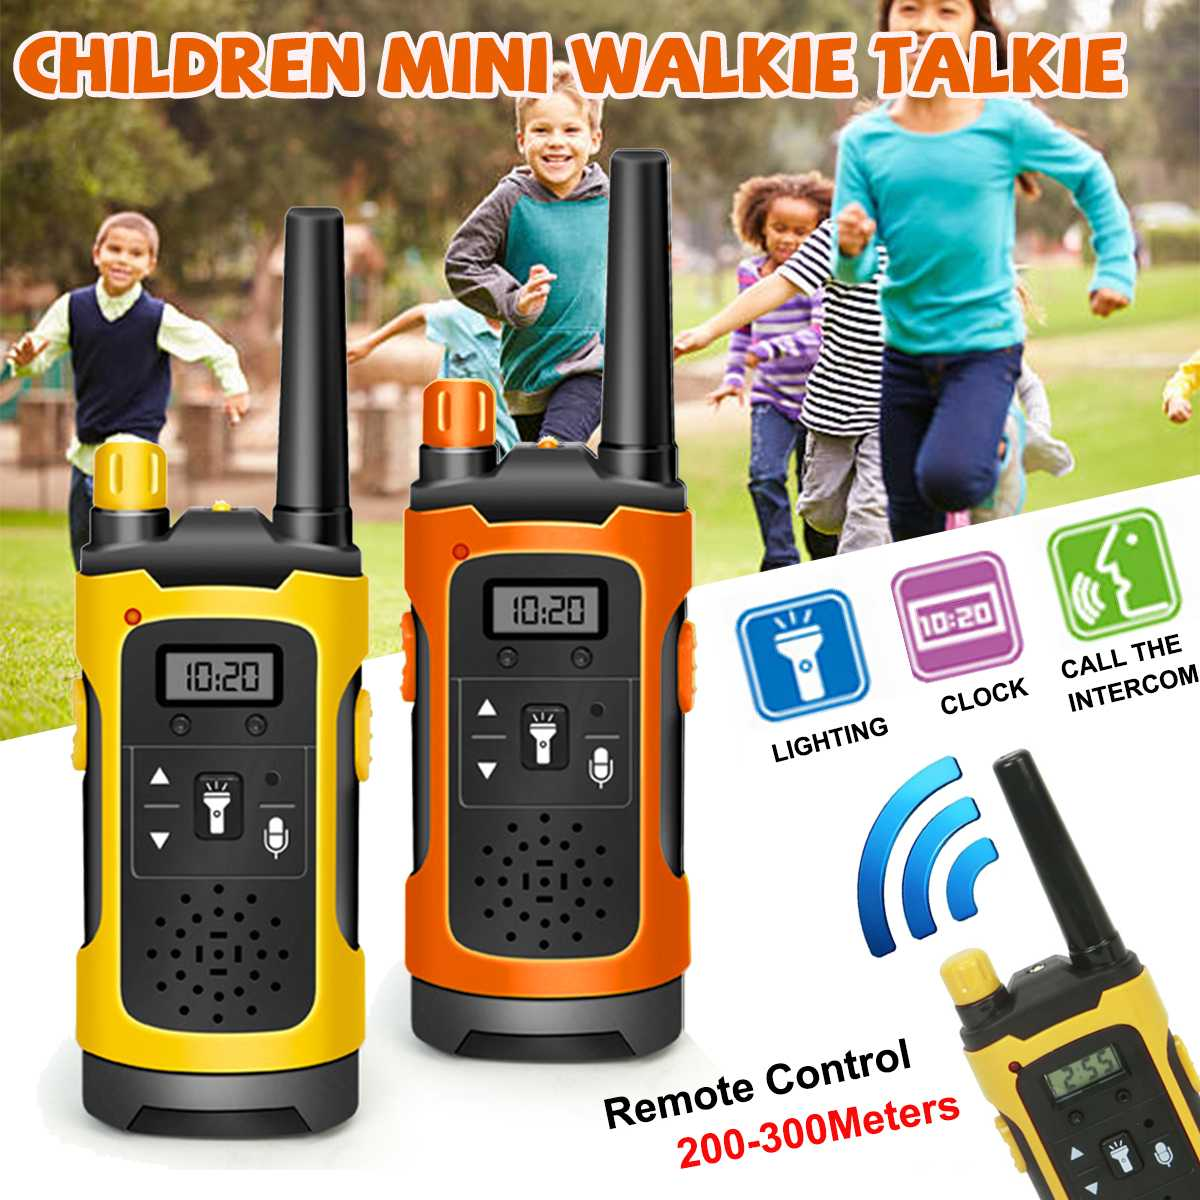 2pcs Mini 200-300M Kids Walkie Talkies Toy Child Electronic Radio Voice Interphone Toy Outdoor Wireless Walkie Talkies Toy